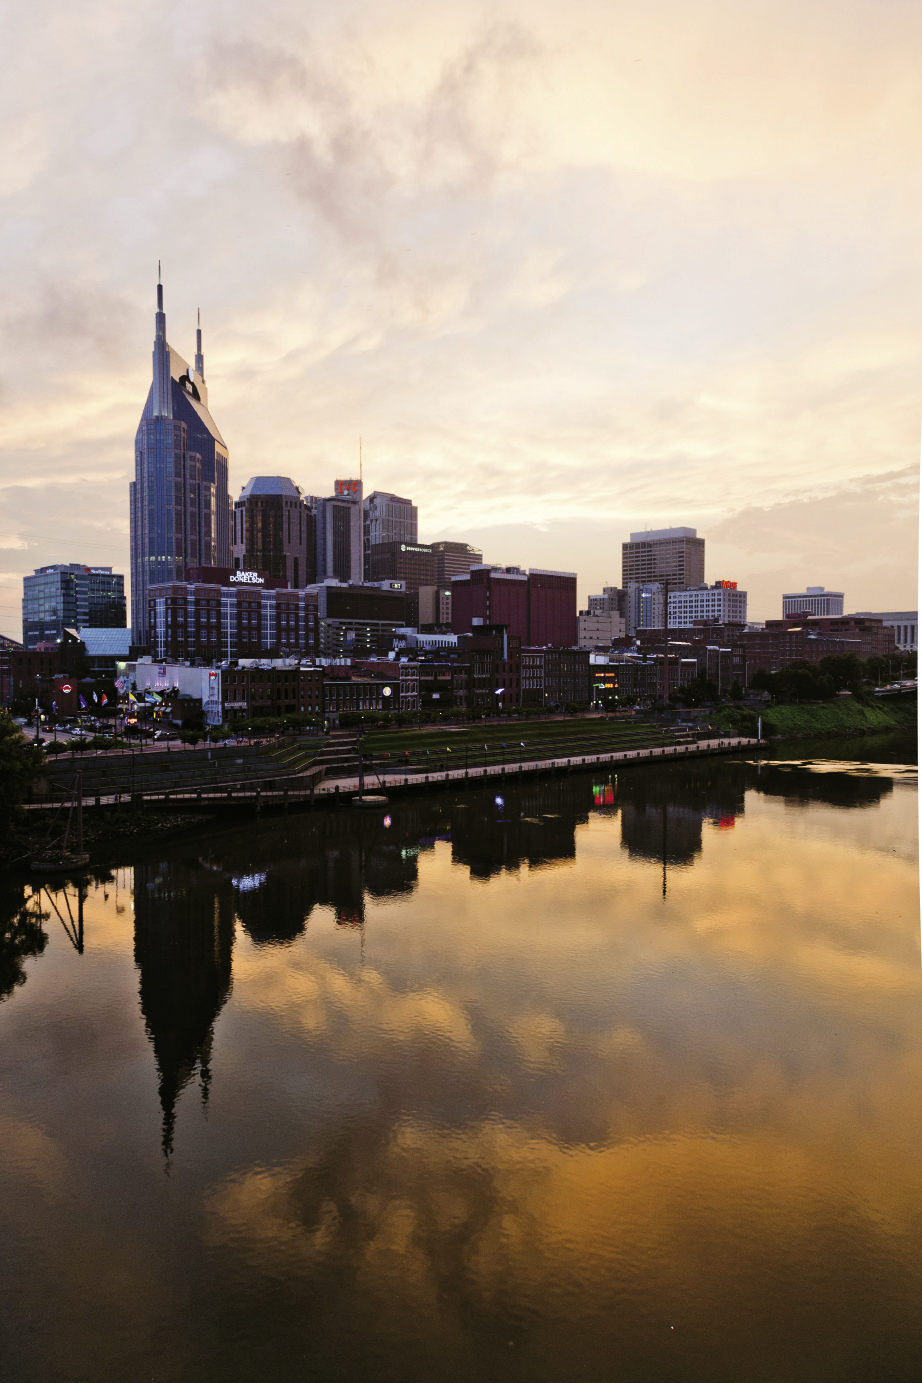 A sunset view of Music City across the Cumberland River